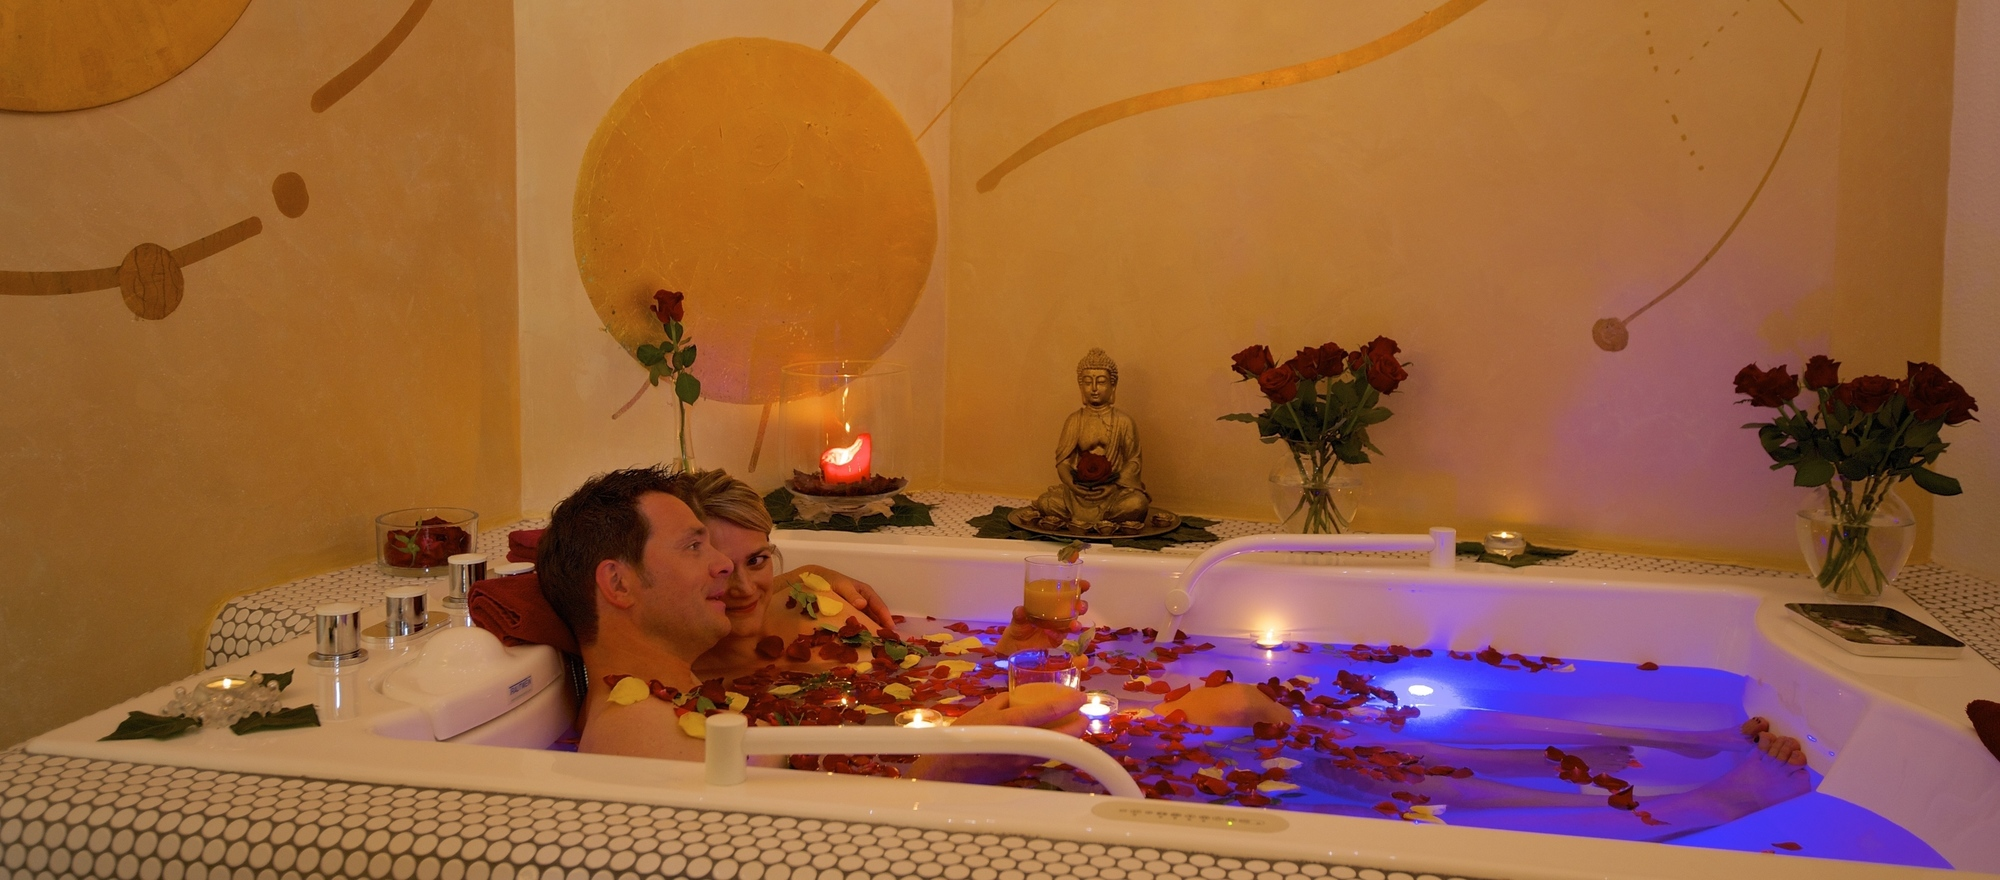 Bathing in the Oasis Sun Spa at the 4-star-superior hotel Ringhotel Krone in Friedrichshafen